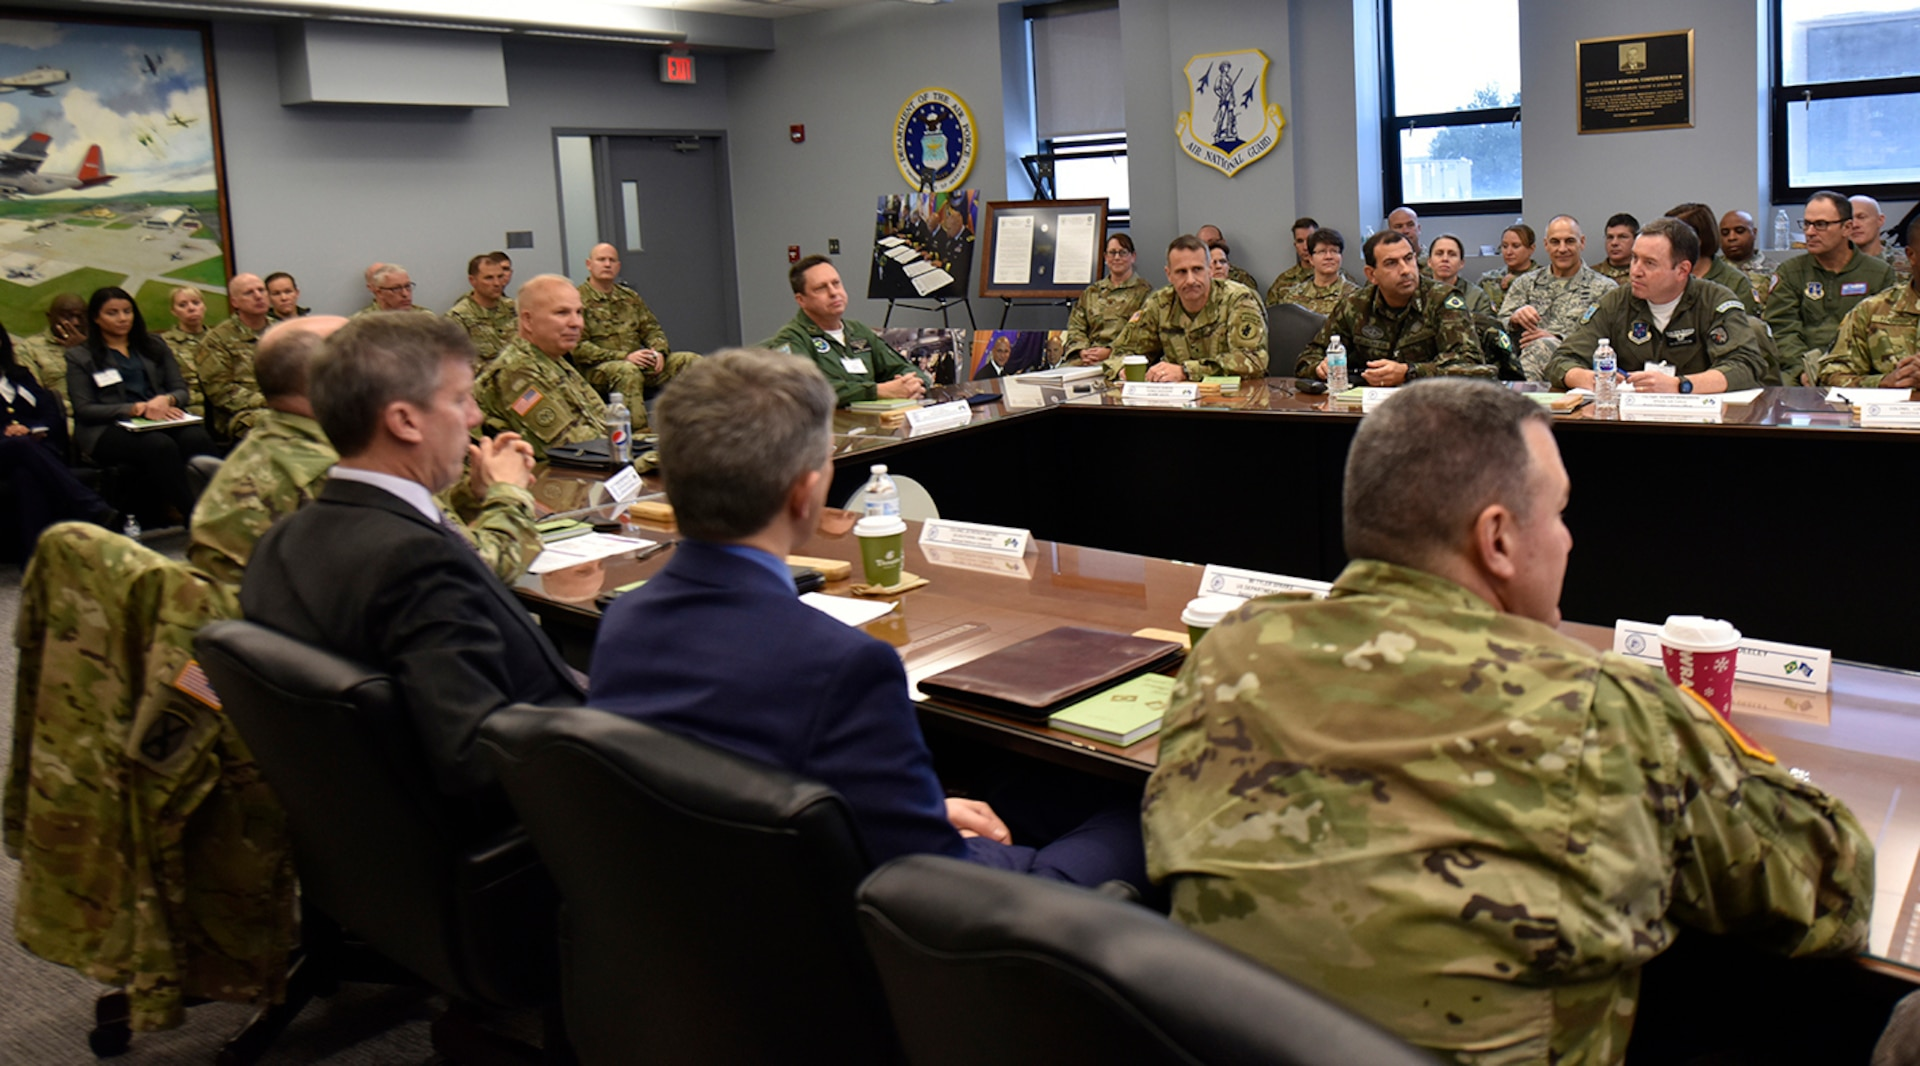 New York Army National Guard Maj.Gen.Ray Shields (center right), the adjutant general of New York, and Brazilian Maj. Gen. Marcio de Calazans Braga (center right), the Brazilian military attache in Washington, D.C., meet with members of the New York Air and Army National Guard and U.S. Southern Command and State Department representatives Dec. 11, 2019, at Stratton Air National Guard Base in Scotia, N.Y. The two-day meeting was held to discuss training and exchange opportunities as part of the National Guard State Partnership Program.